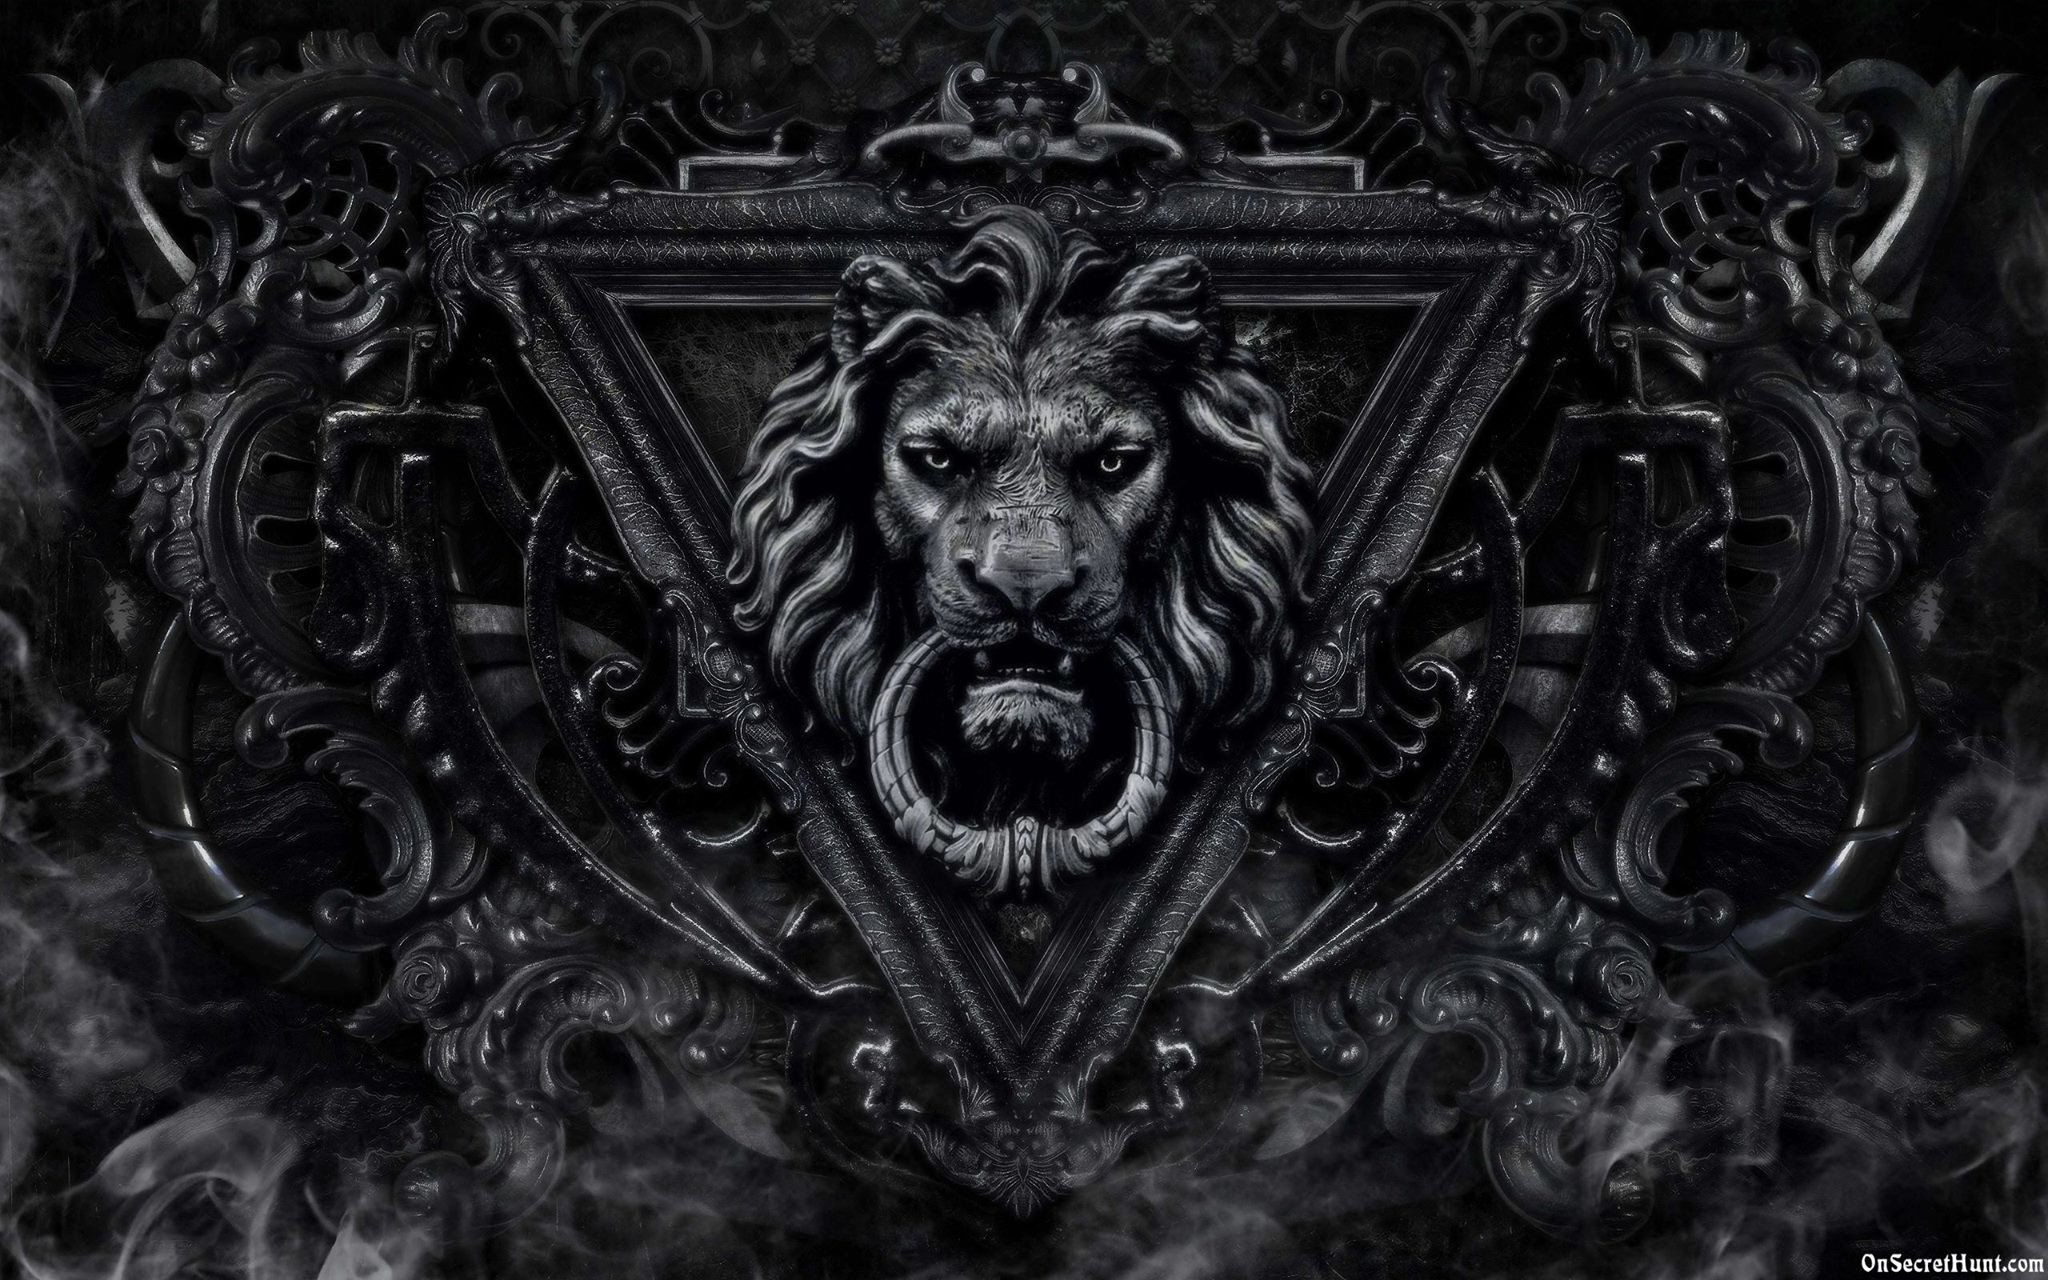 Black Wallpaper Iphone: Black And White Lion Wallpaper (51+ Images